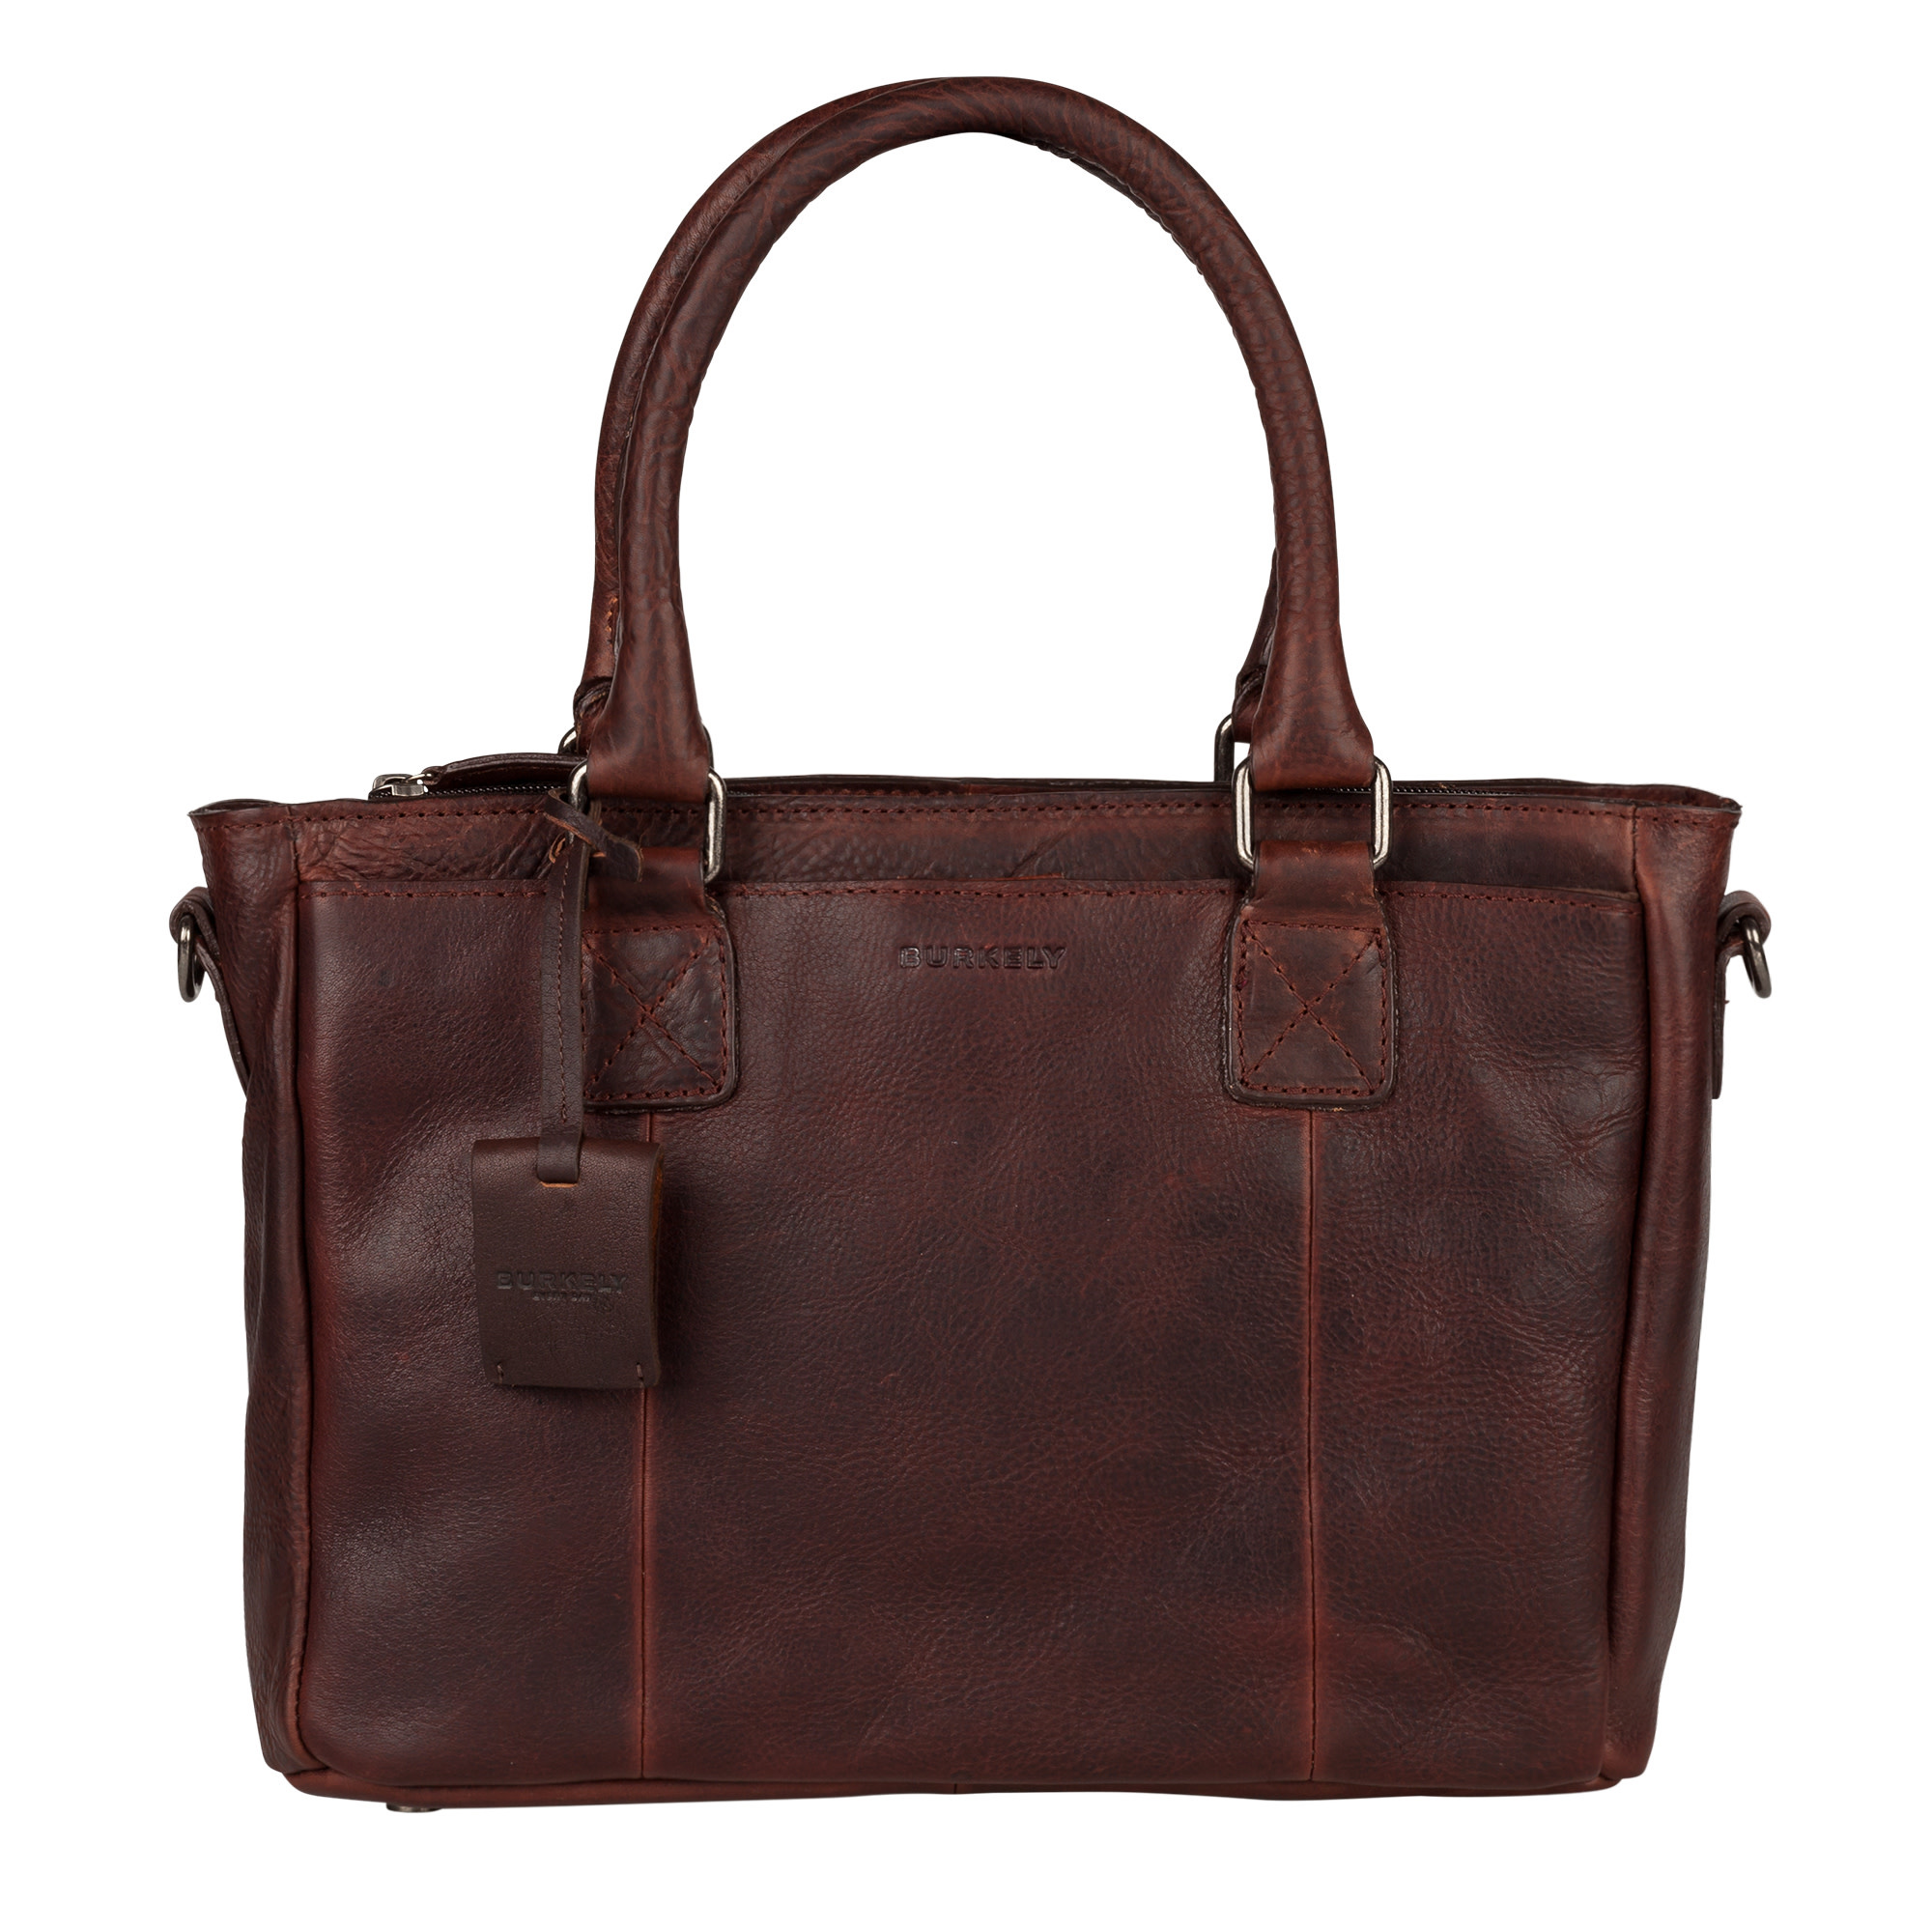 Burkely Antique Avery Handbag S - Bruin